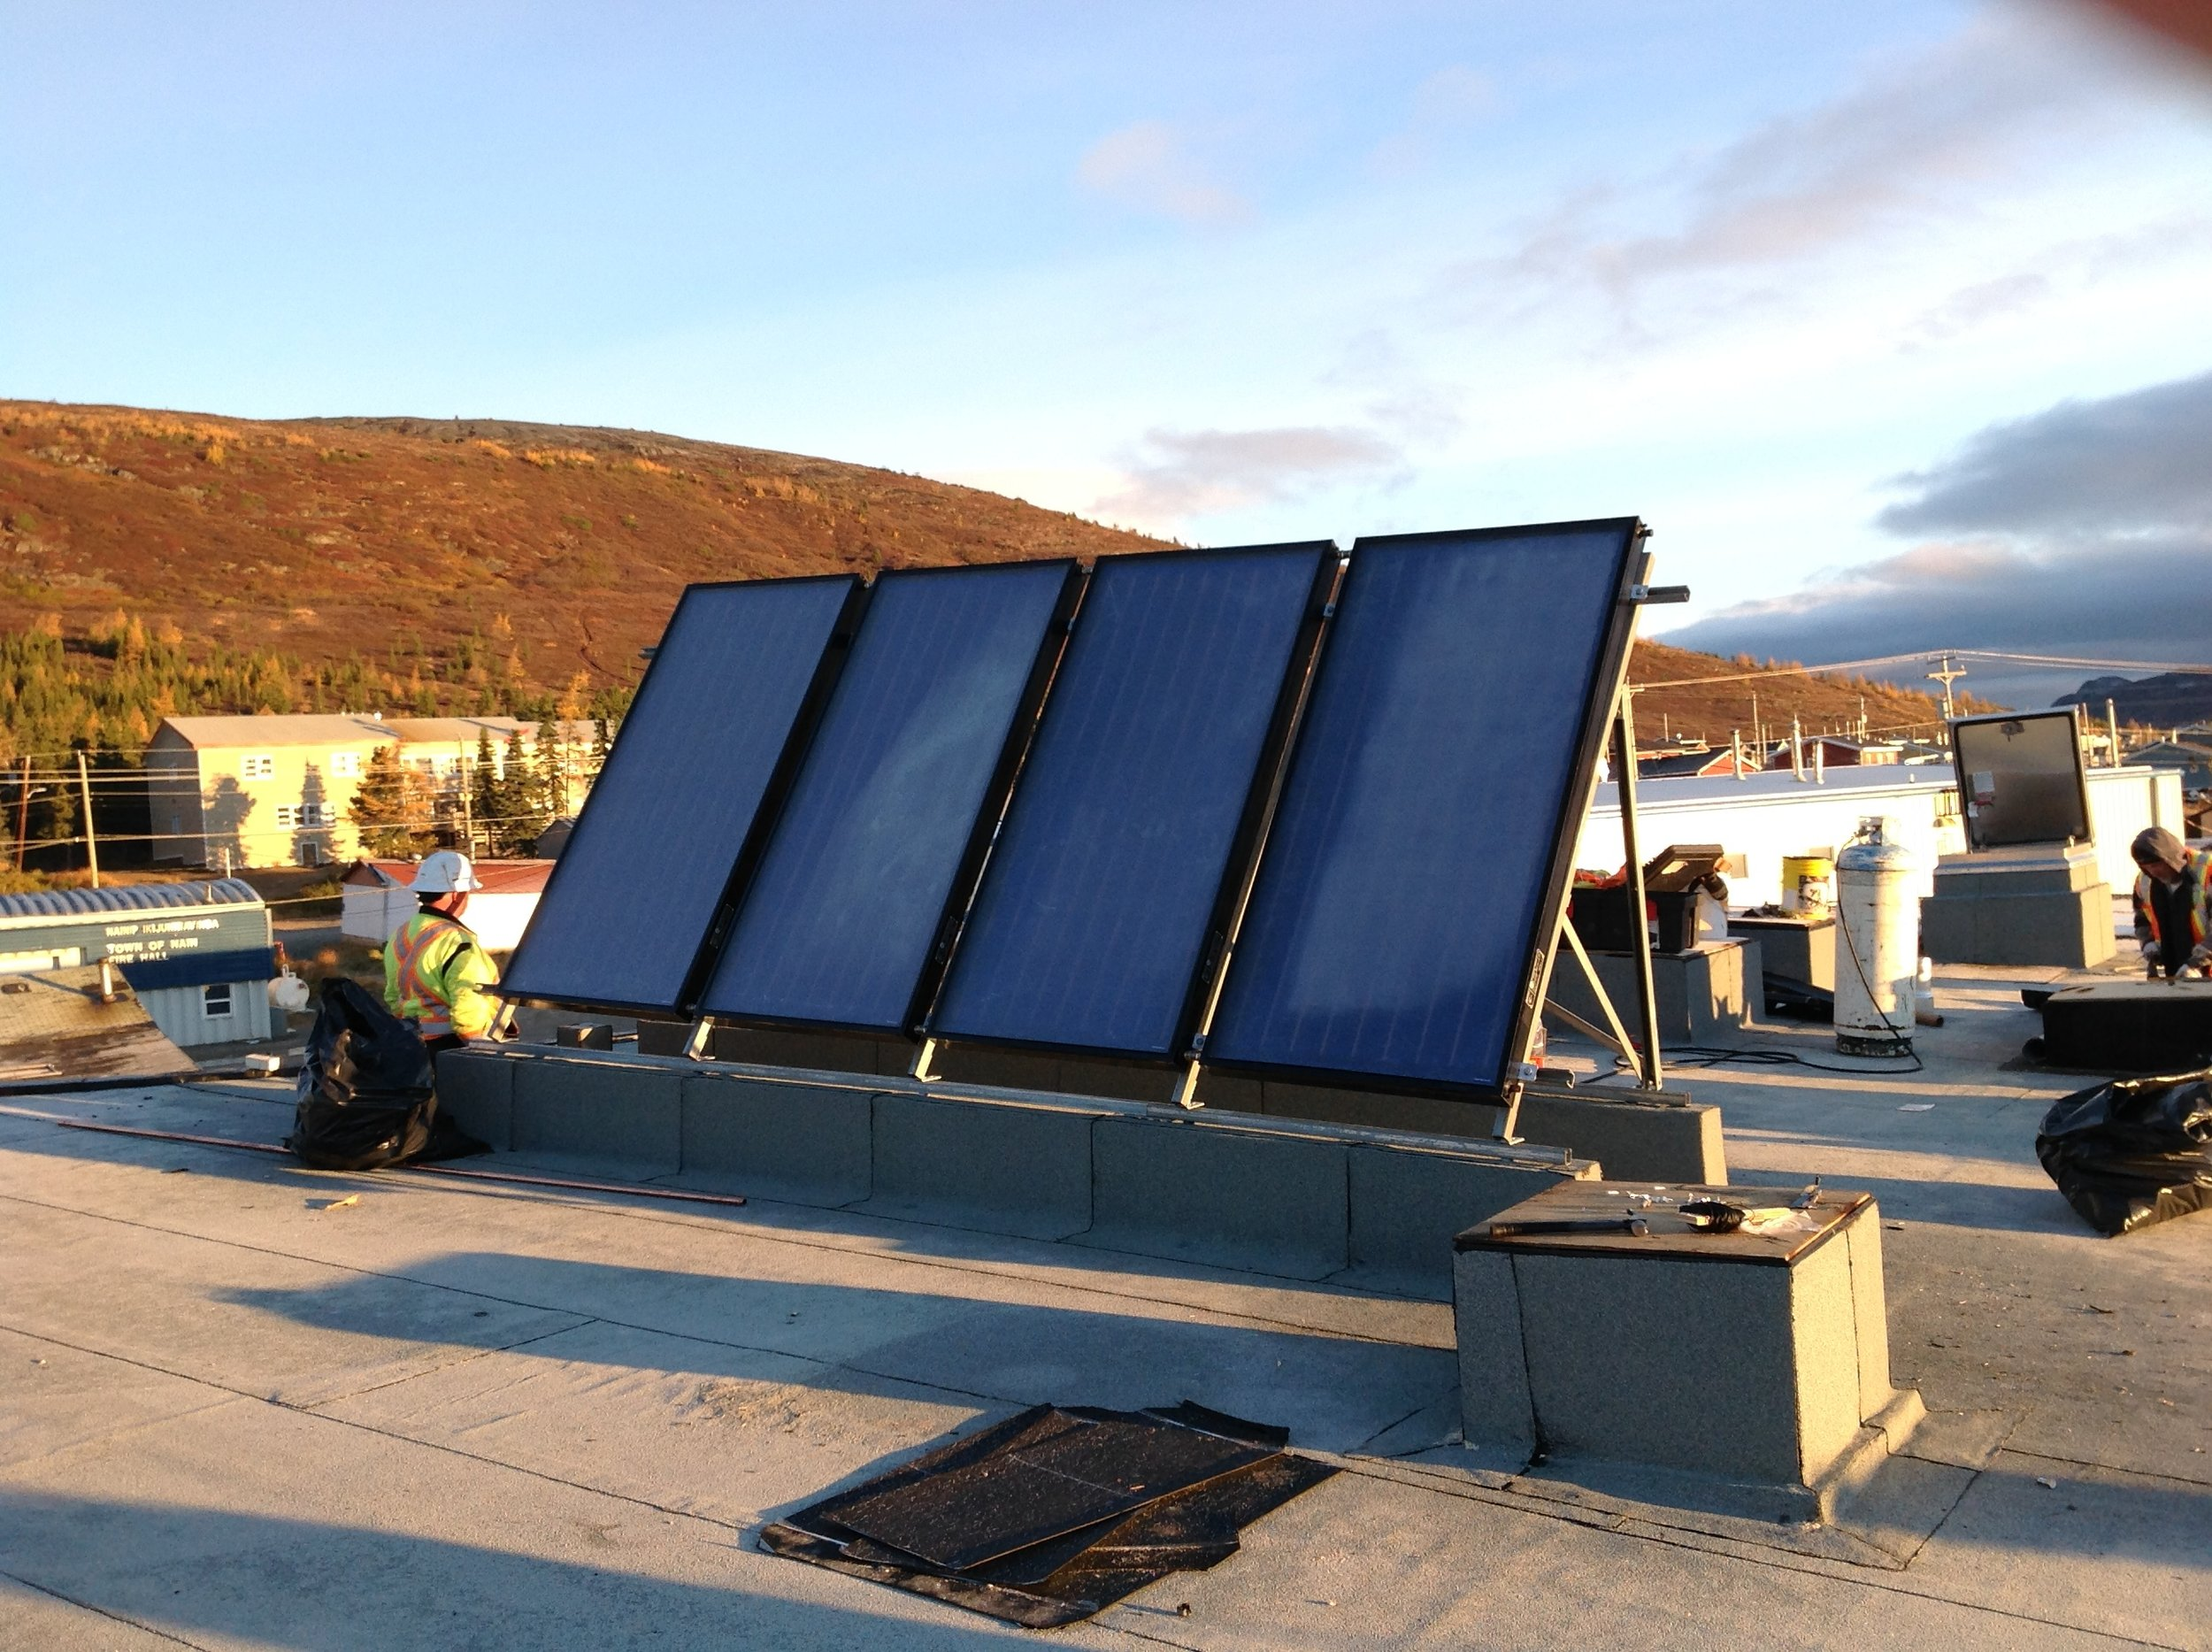 Solar system installed in Nain, NL